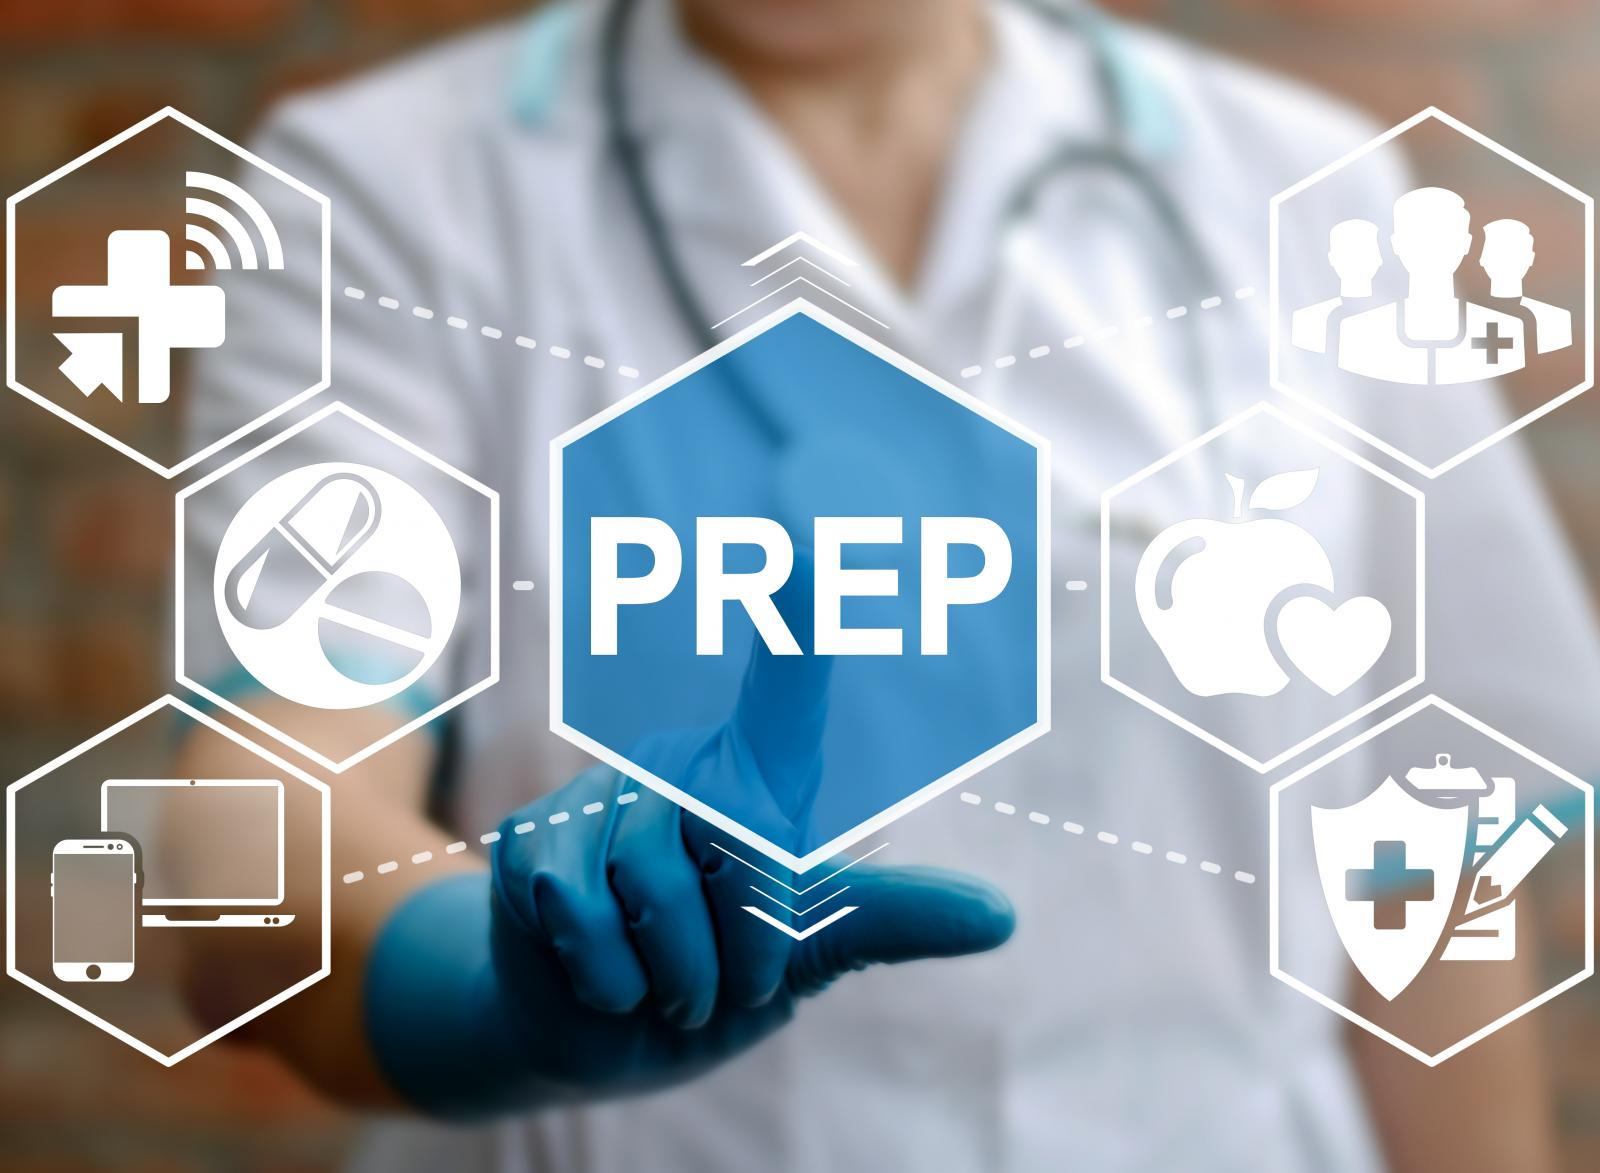 Study: PrEP Awareness and Use Is Increasing